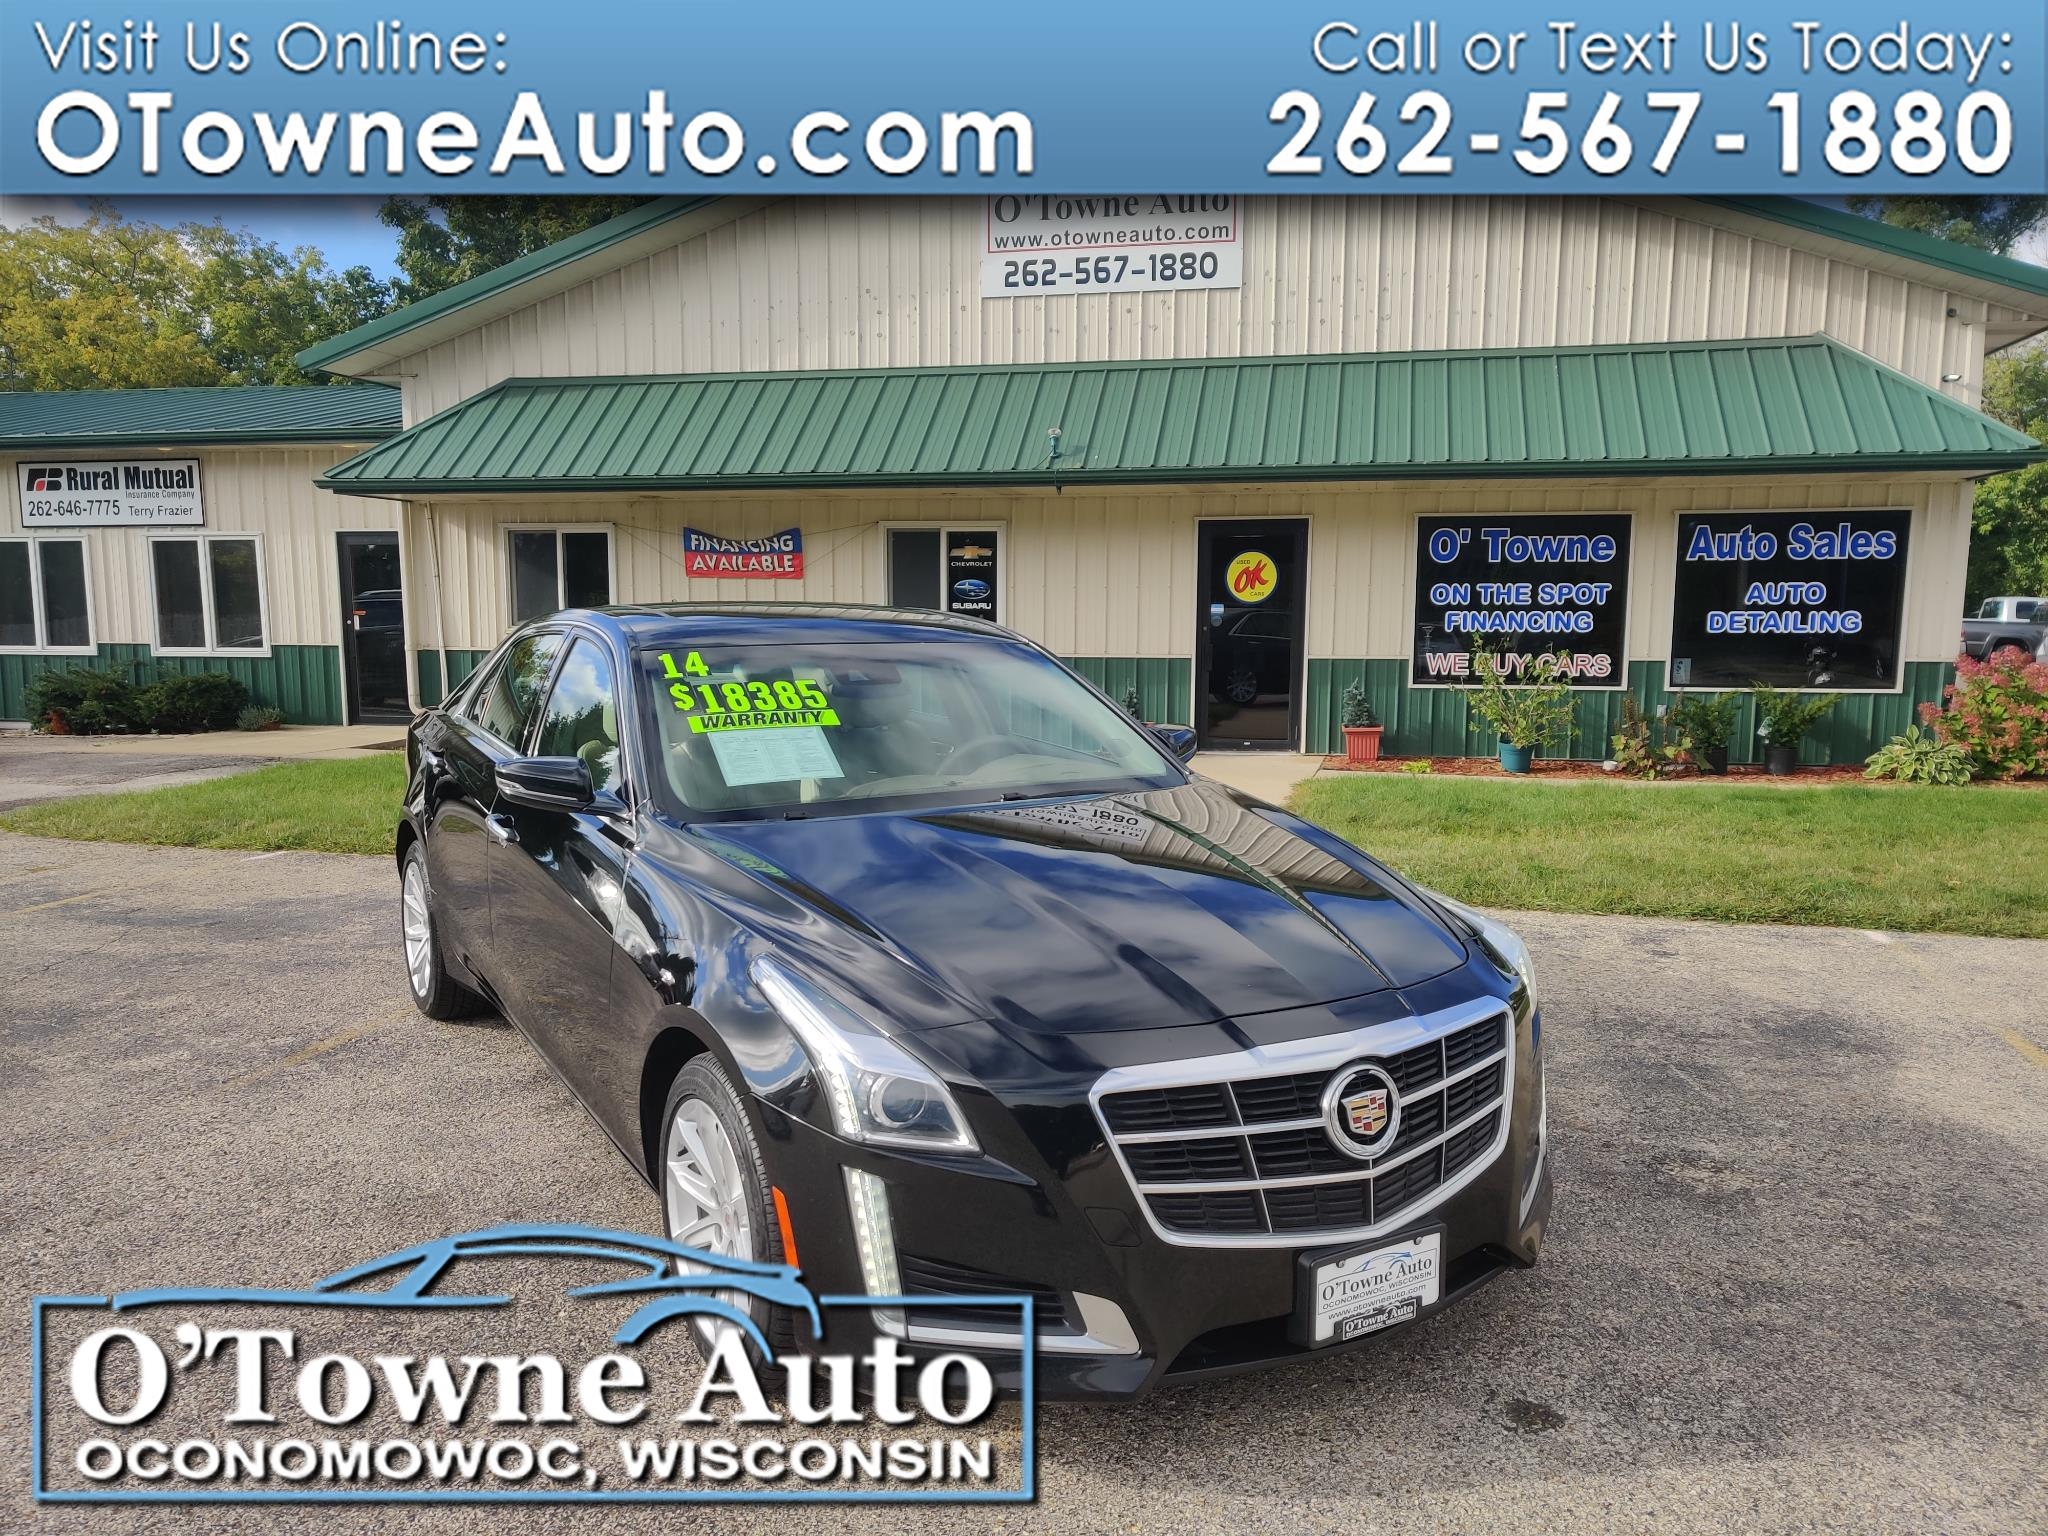 Towne Auto Sales >> Used Cars For Sale Oconomowoc Wi 53066 O Towne Auto